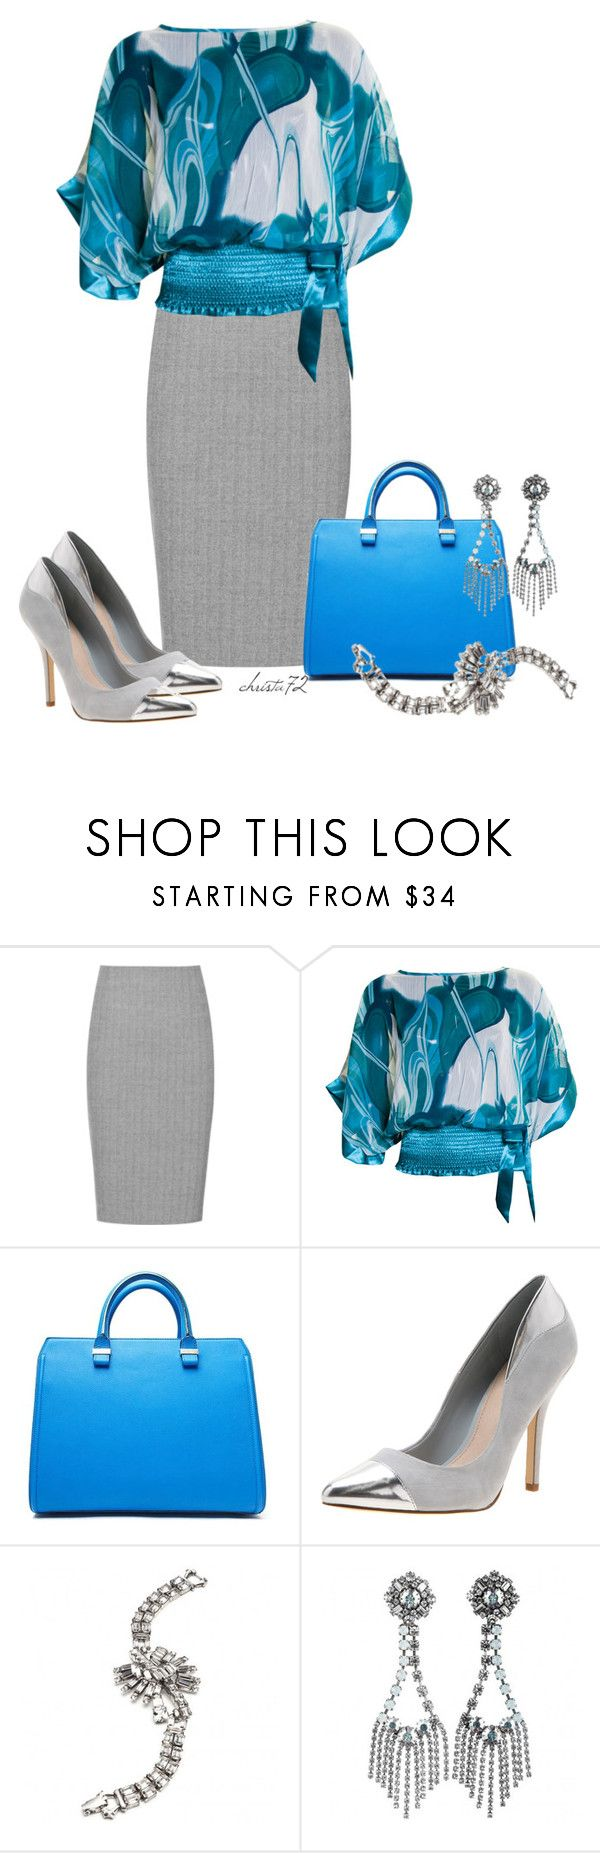 """Office Outfit"" by christa72 ❤ liked on Polyvore featuring Reiss, Victoria Beckham, RMK and DANNIJO"